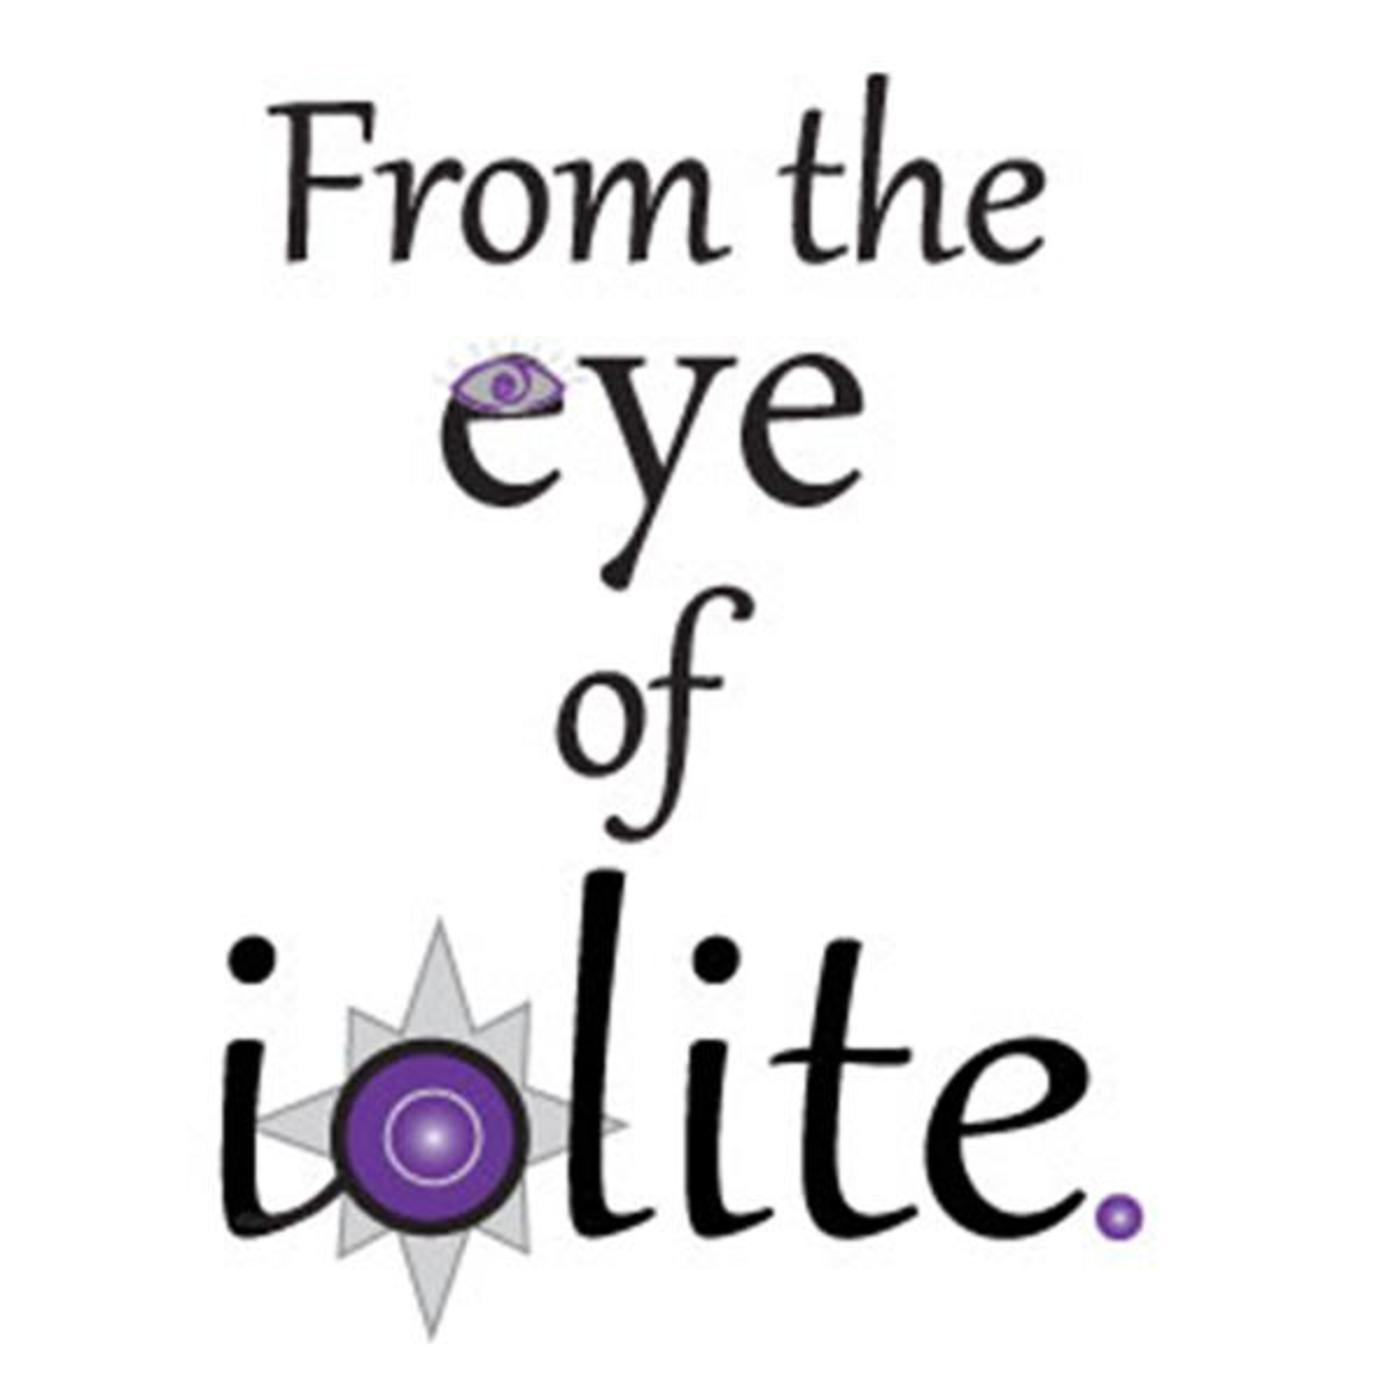 From the eye of iolite